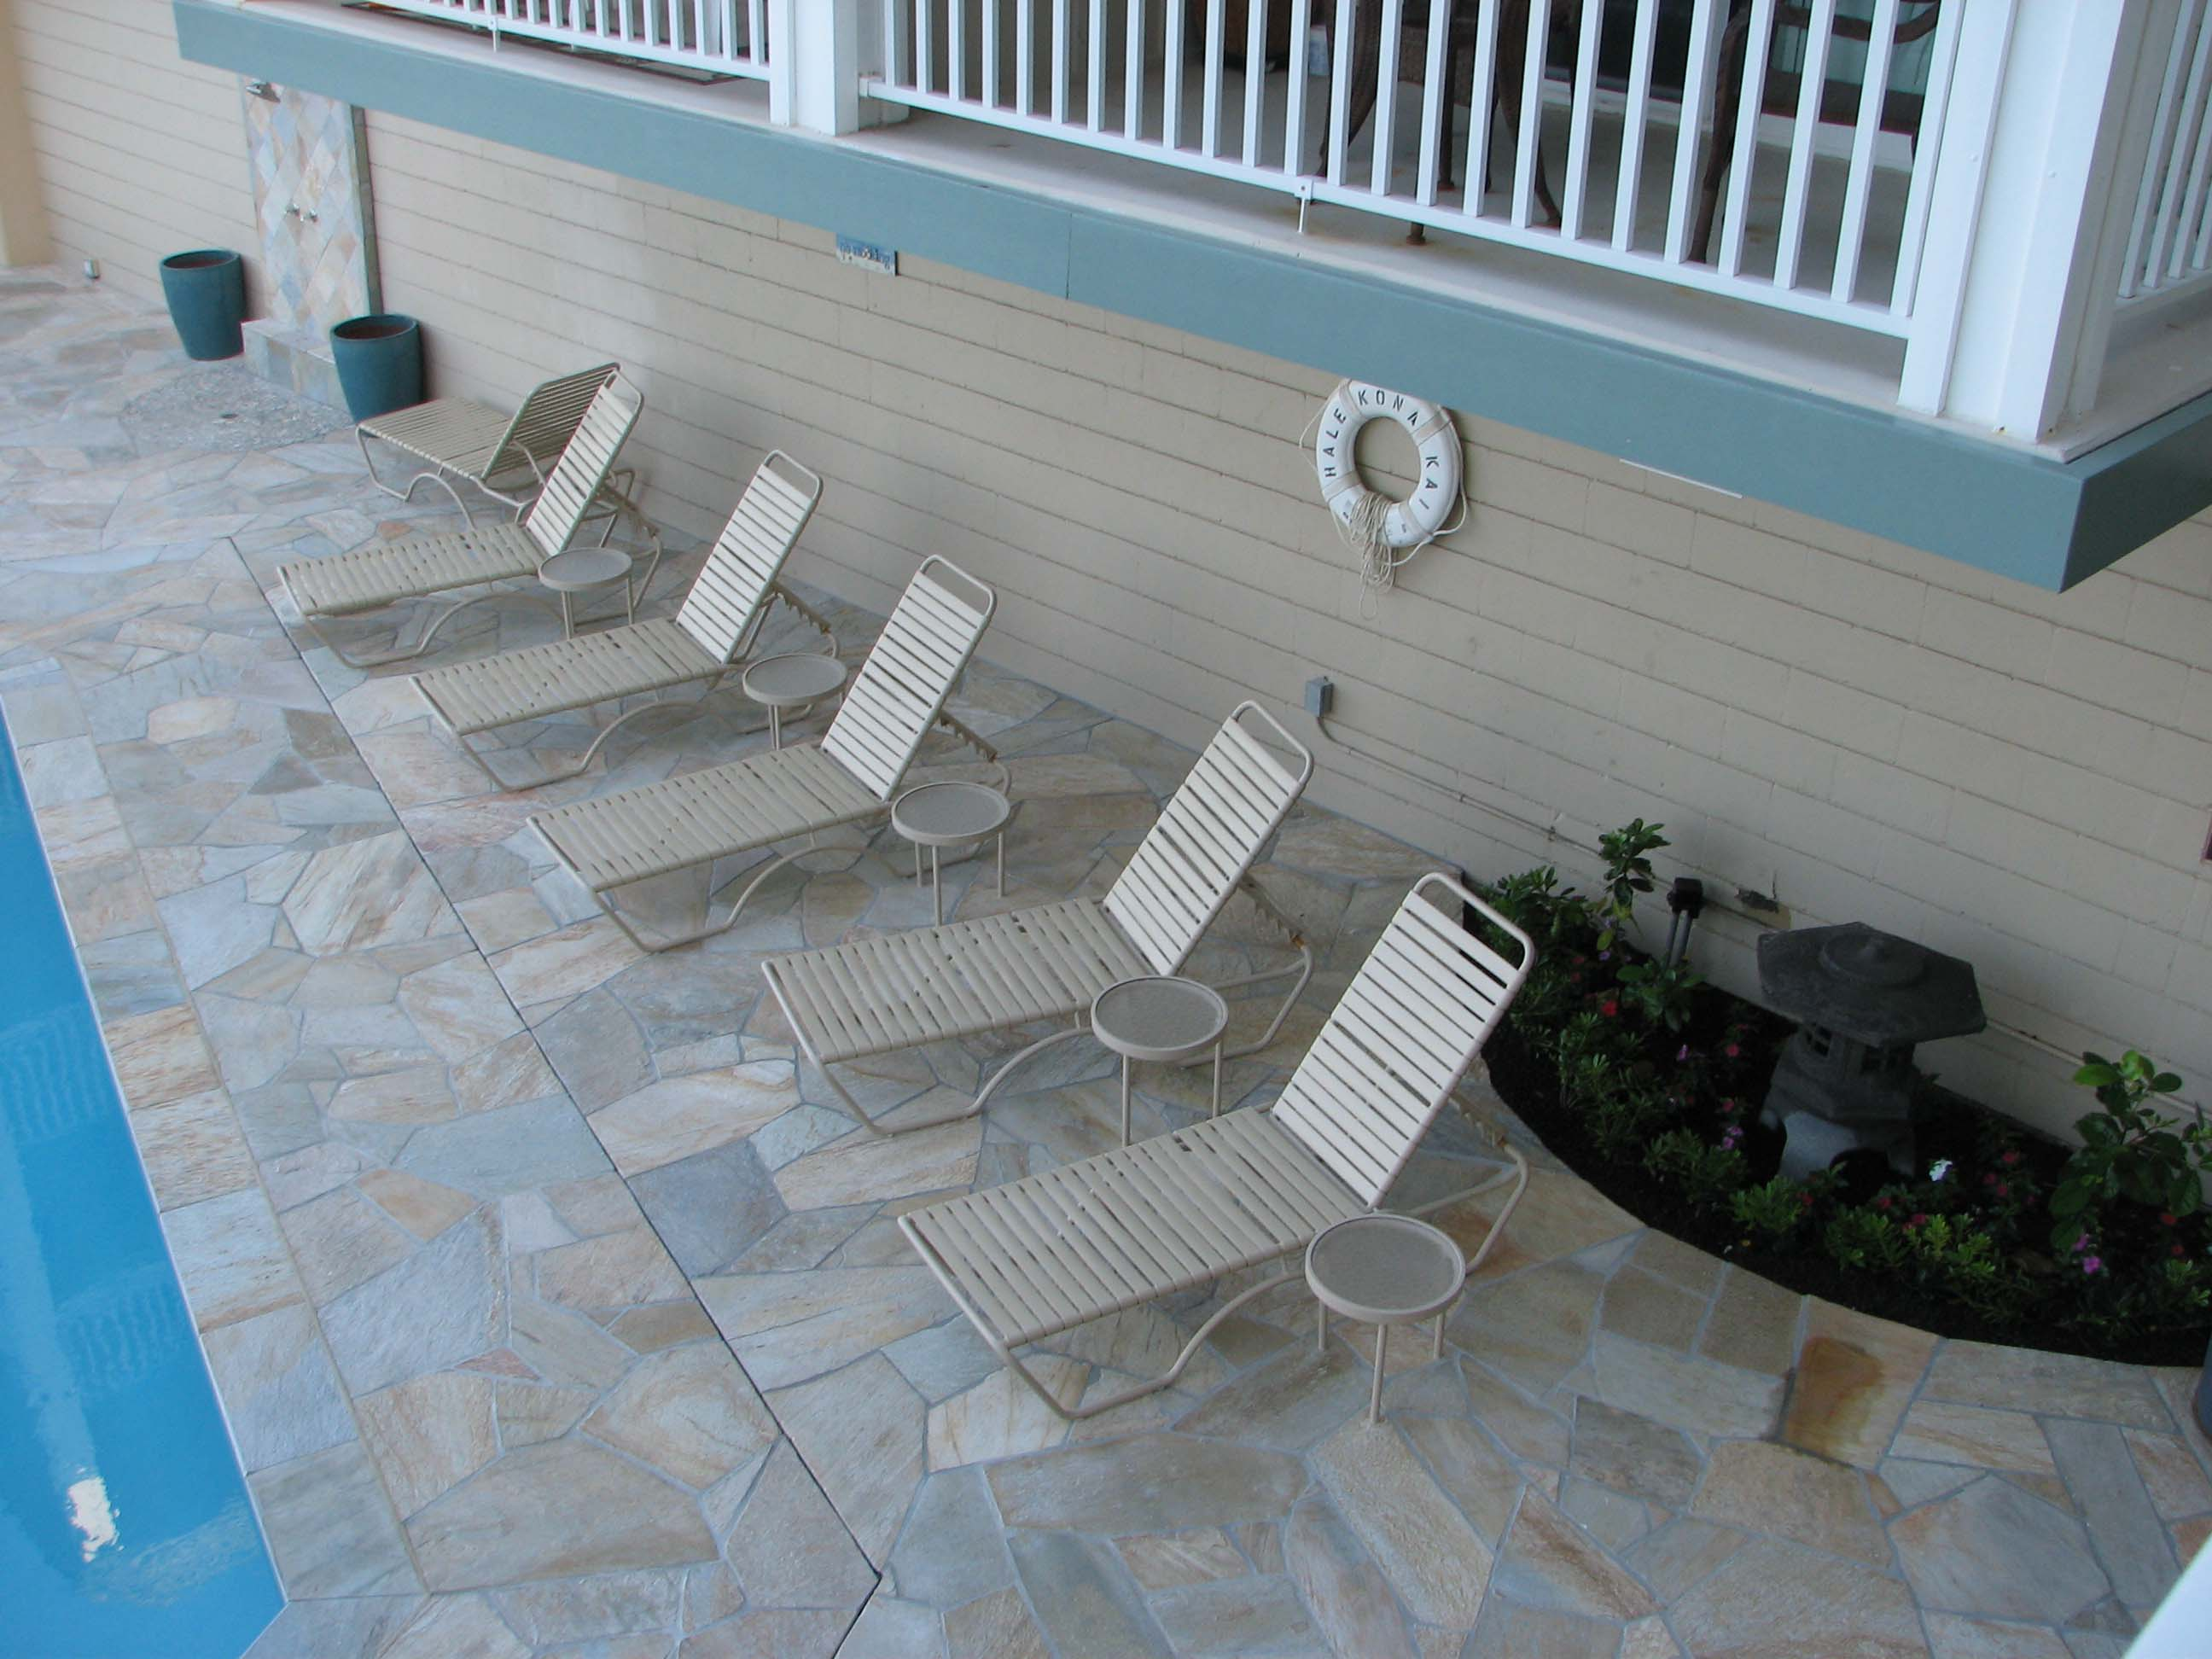 Lots of chaise lounge chairs waiting for you.. read a book or watch the whales, dolphins and turtles.